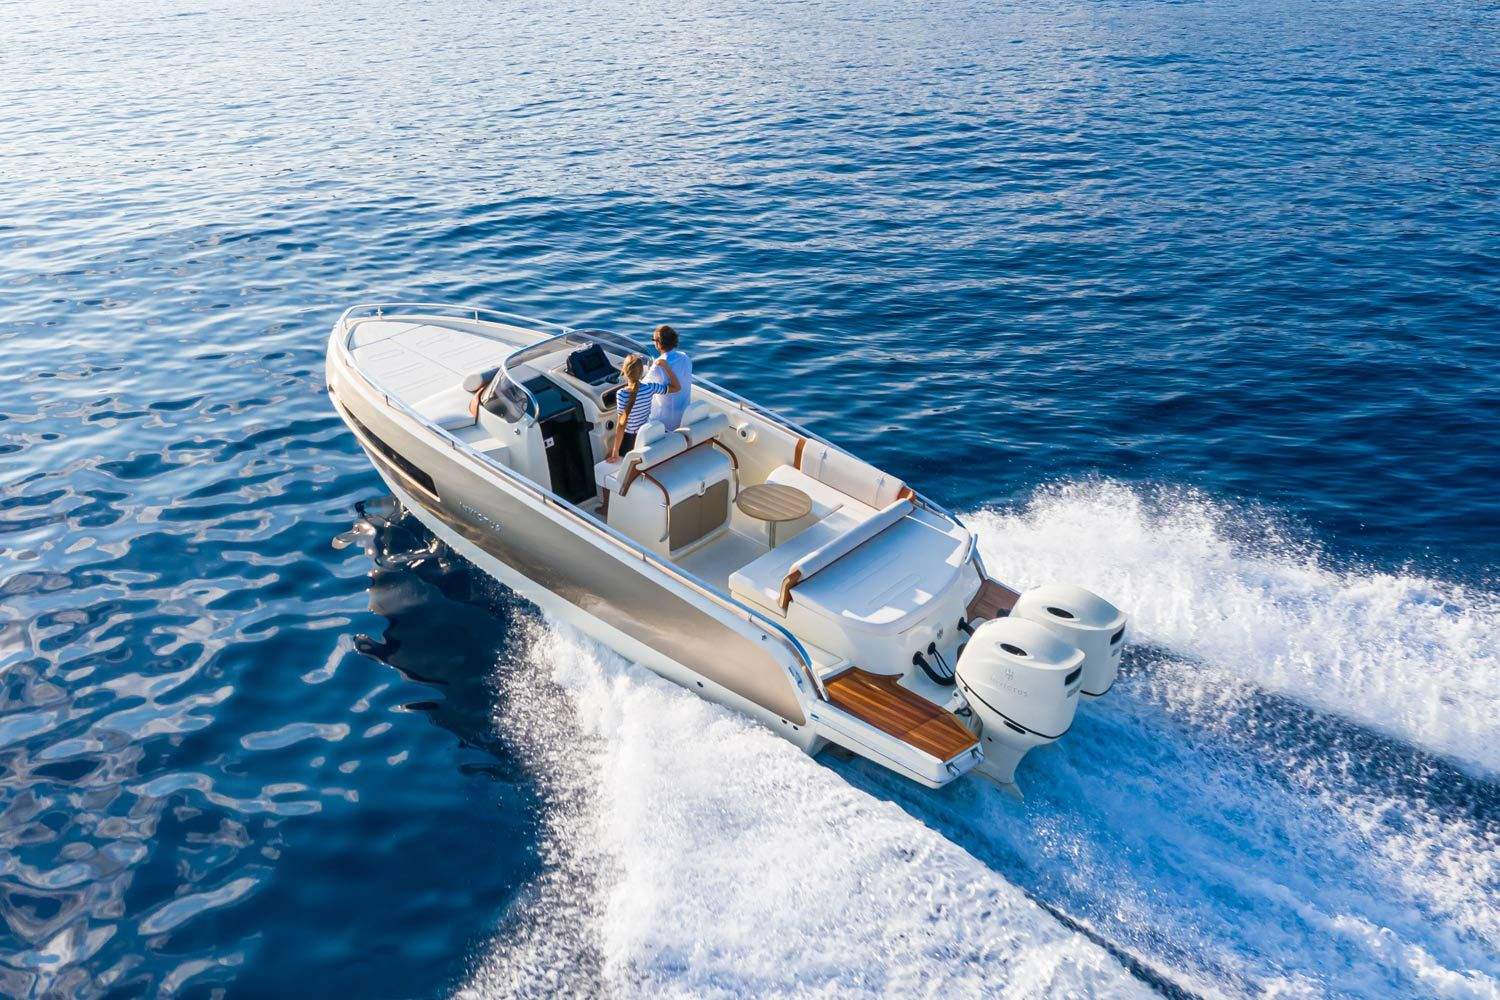 The GT280S improves upon the original GT280 model with two outboard engines that total 500 hp.